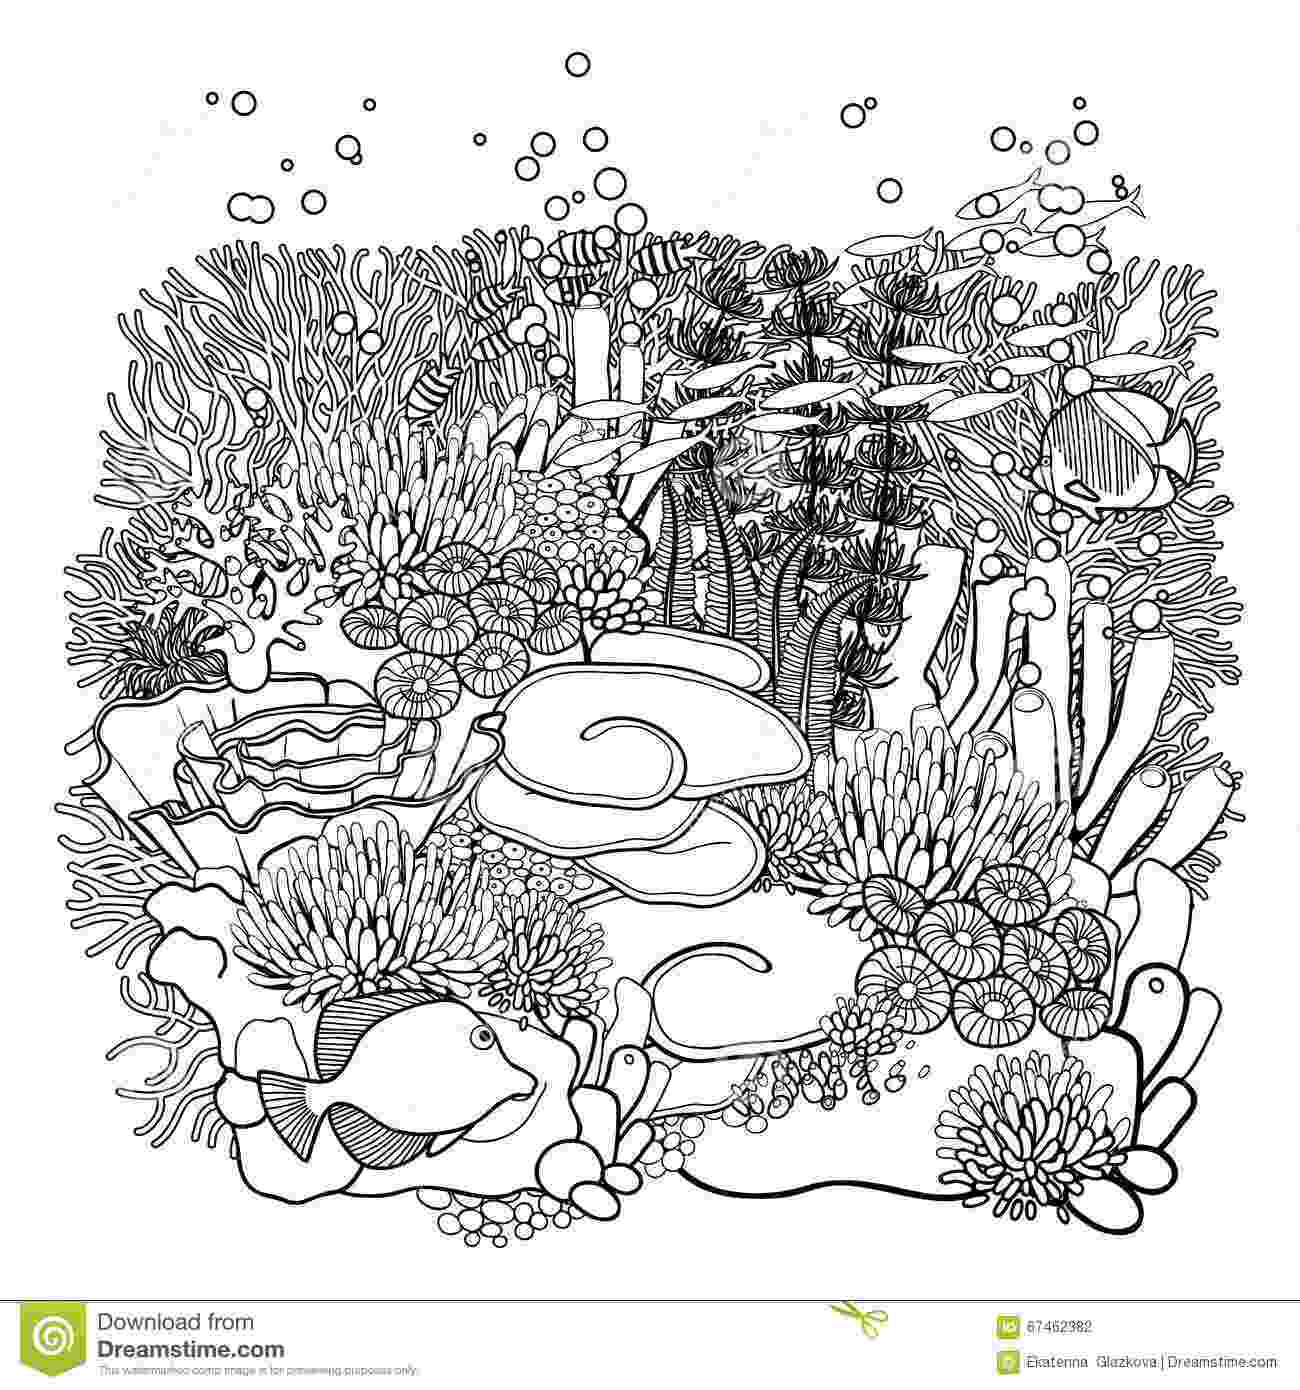 ocean plants coloring pages free coloring pages of sea plants coloring pages plants ocean